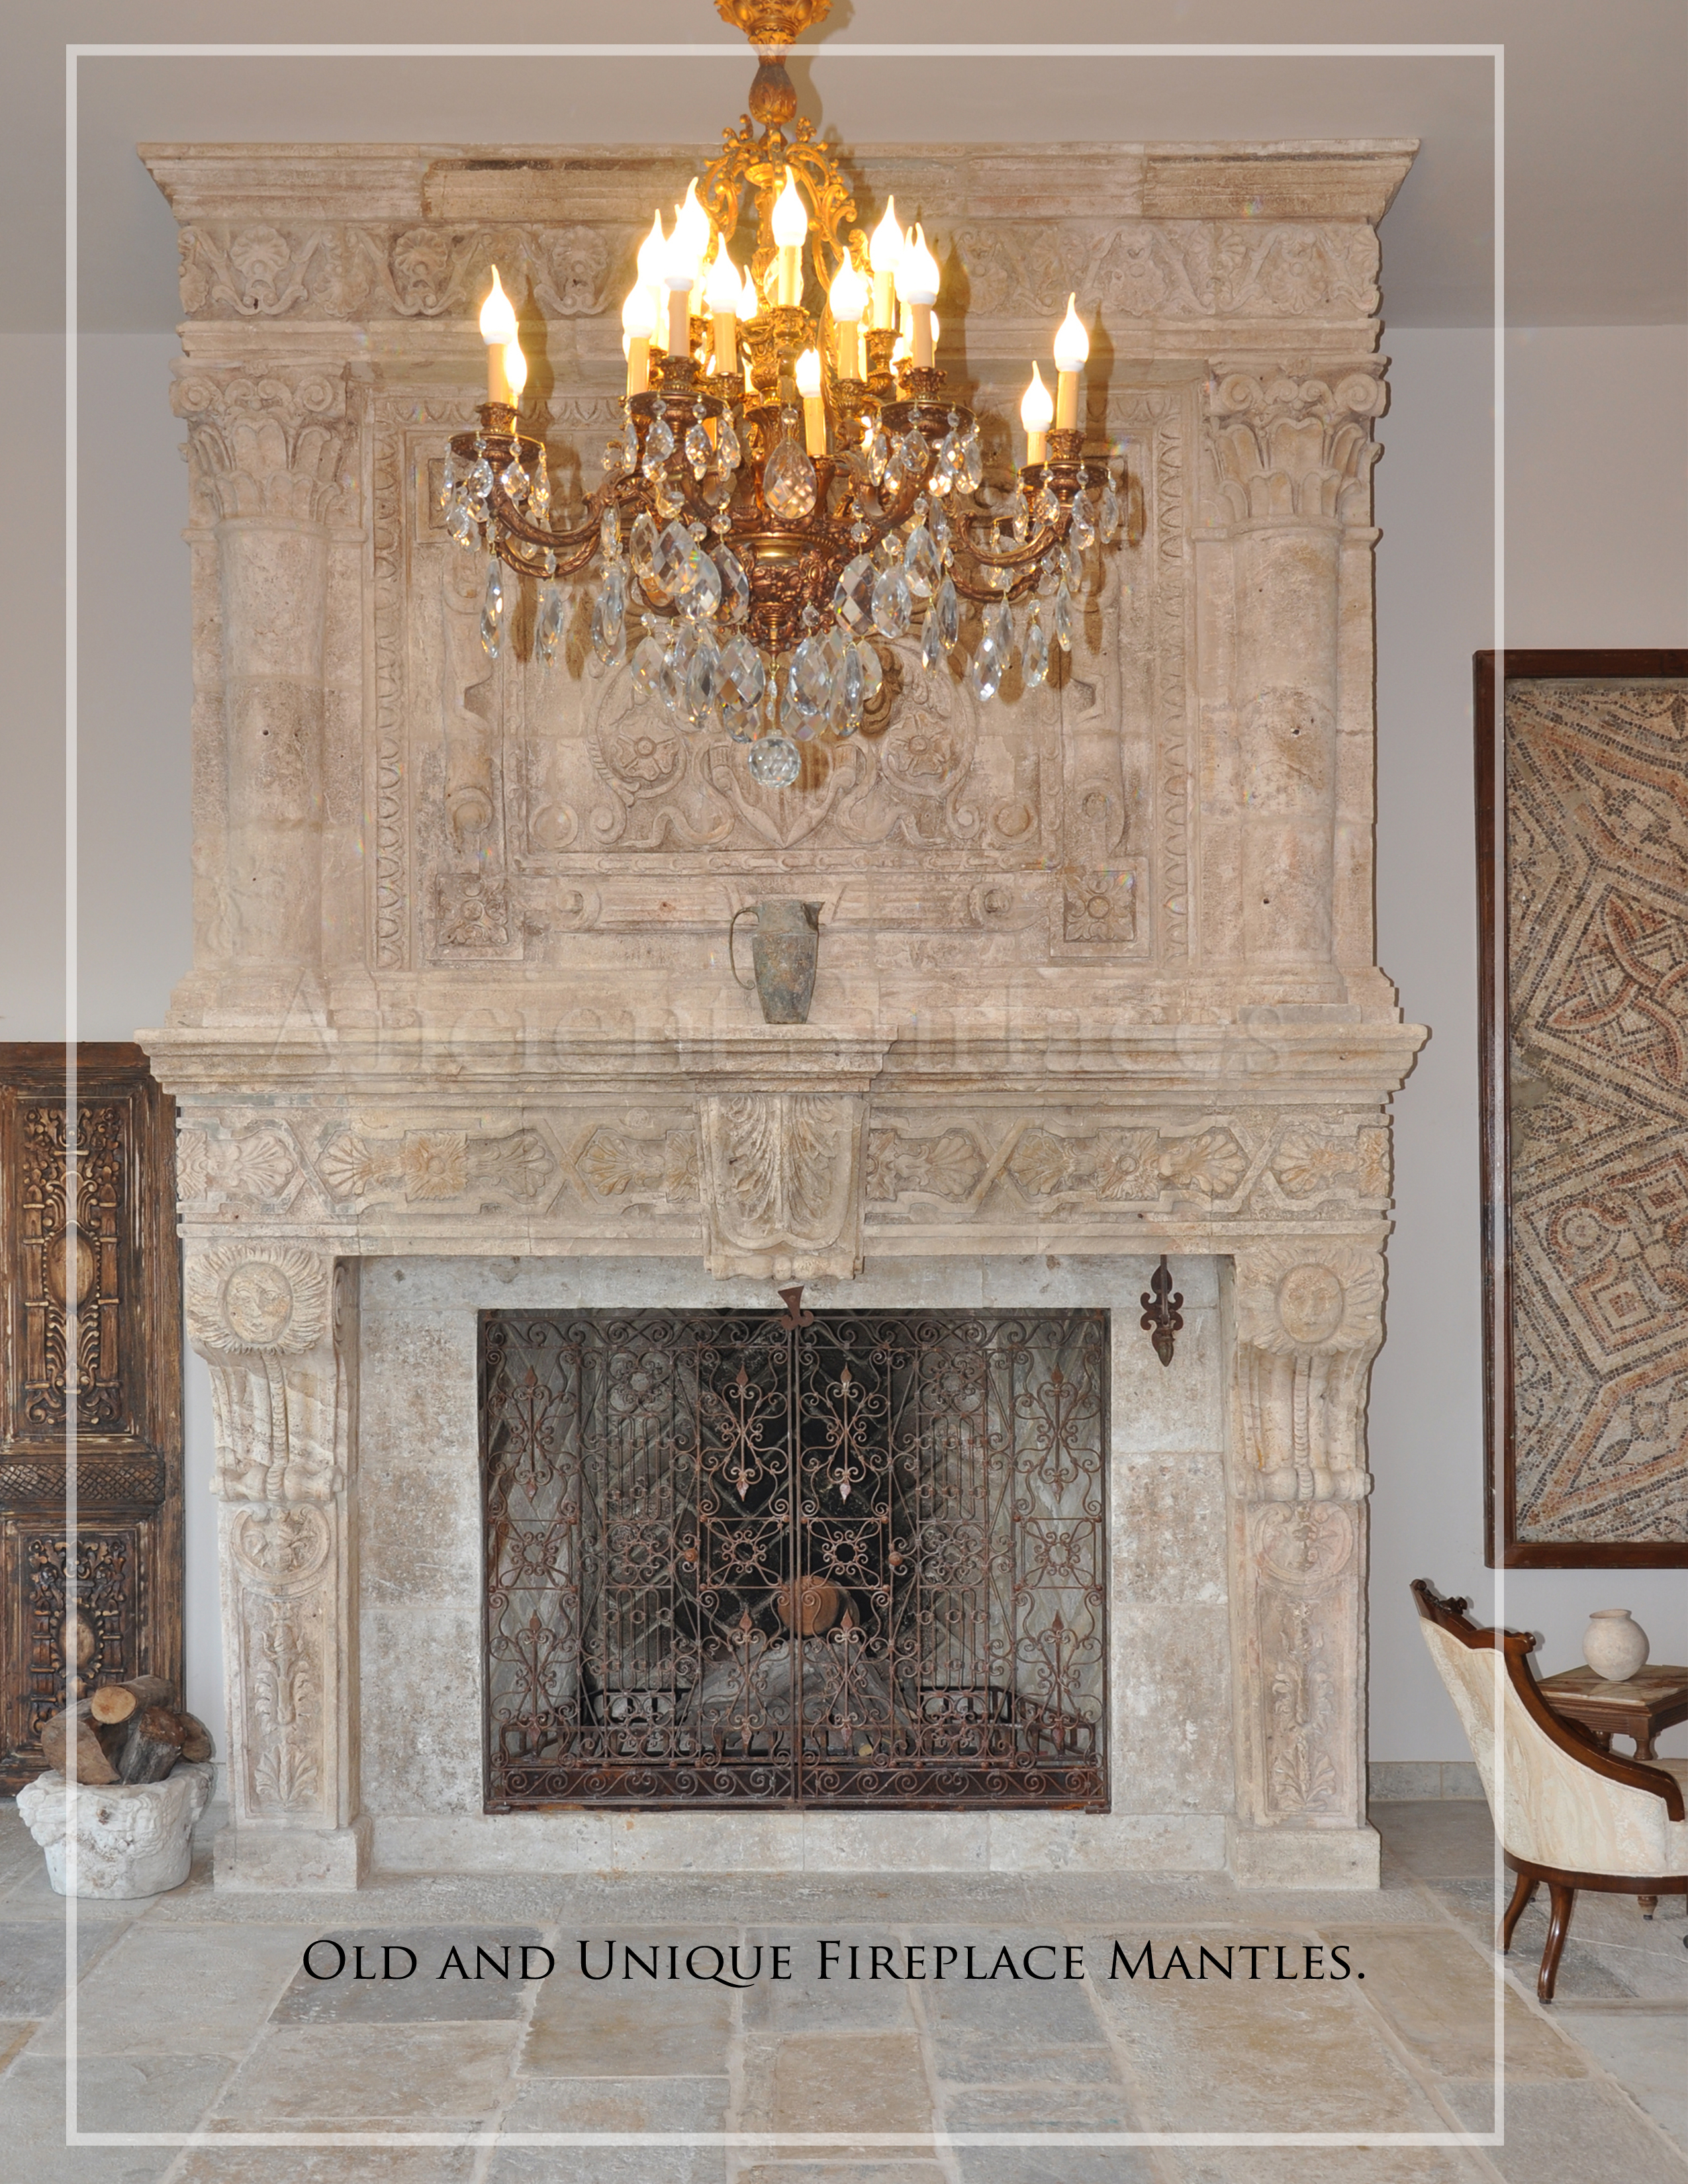 One of a kind antique limestone fireplace hundreds years old reclaimed  and restored by hand shipped from Spain to French castle in the Dordogne region stone fireplaces Antique Fireplaces Ancient Surfaces